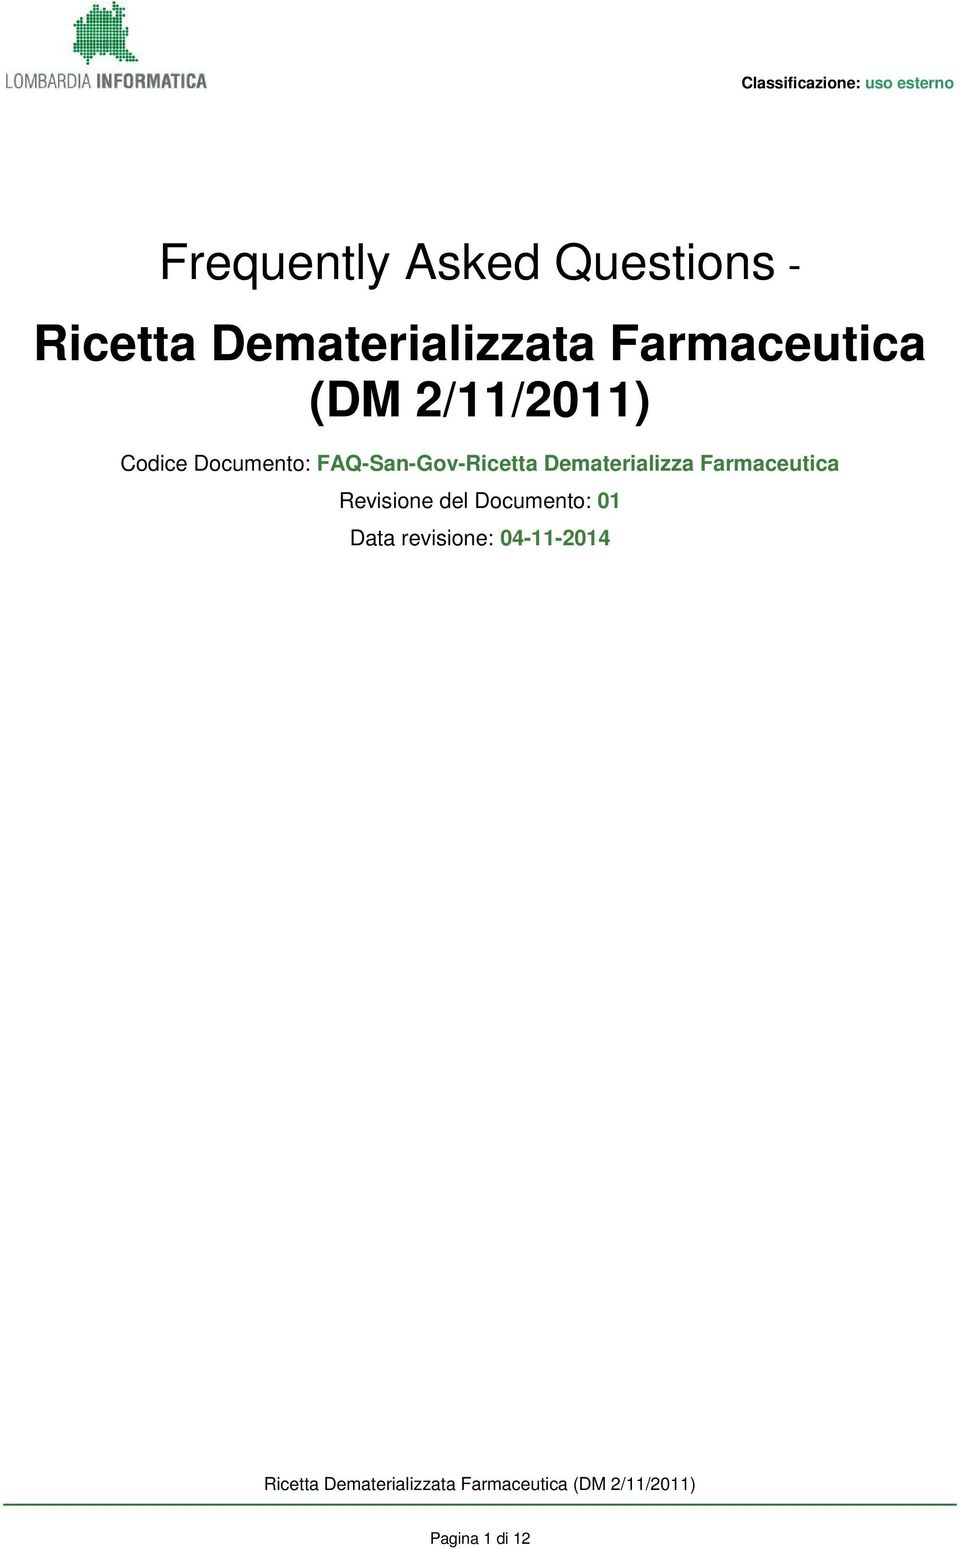 Documento: FAQ-San-Gov-Ricetta Dematerializza Farmaceutica